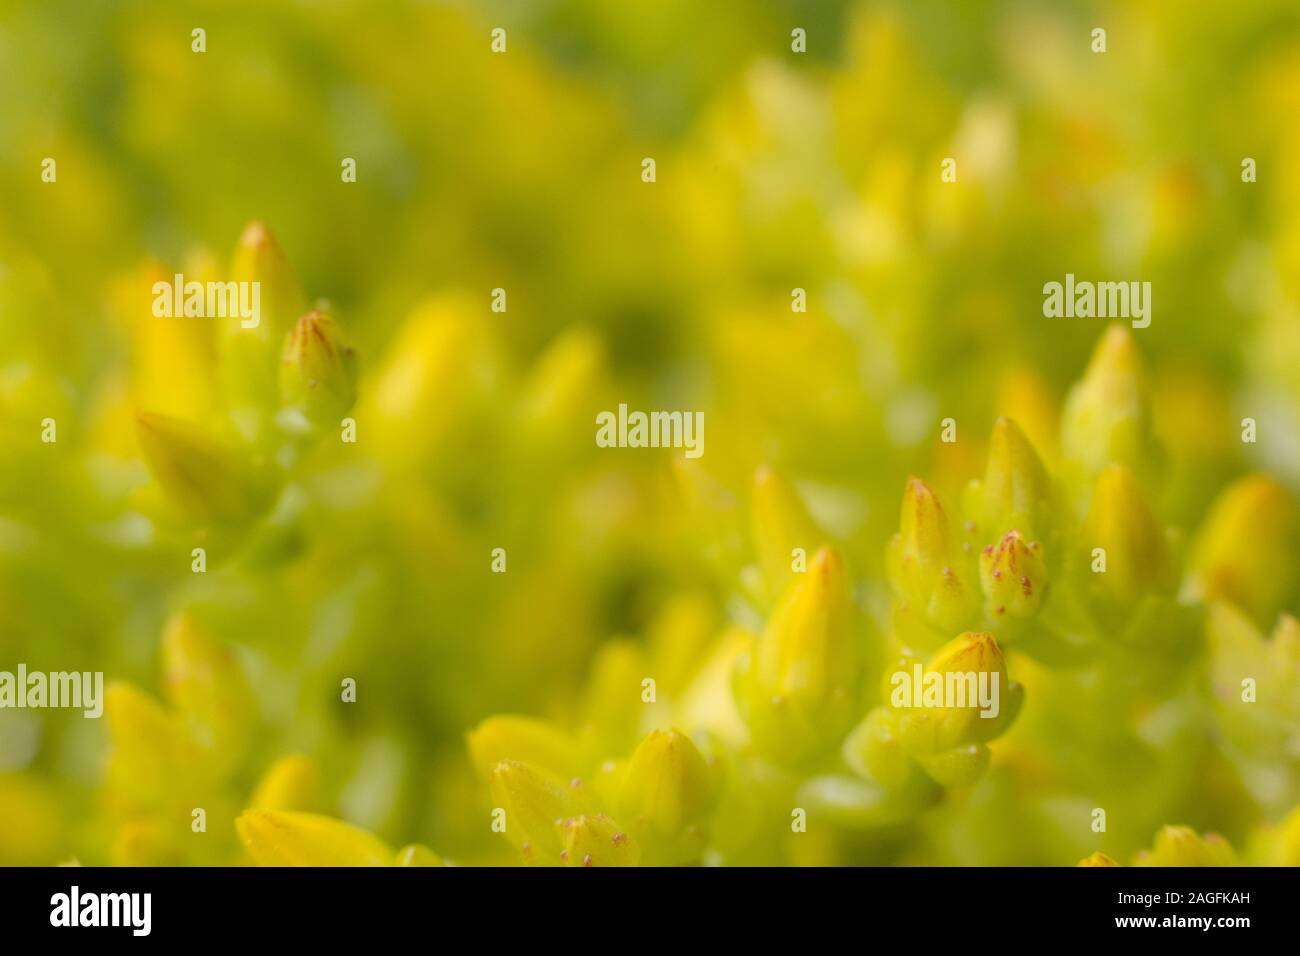 A close-up of a succulent plant Stock Photo